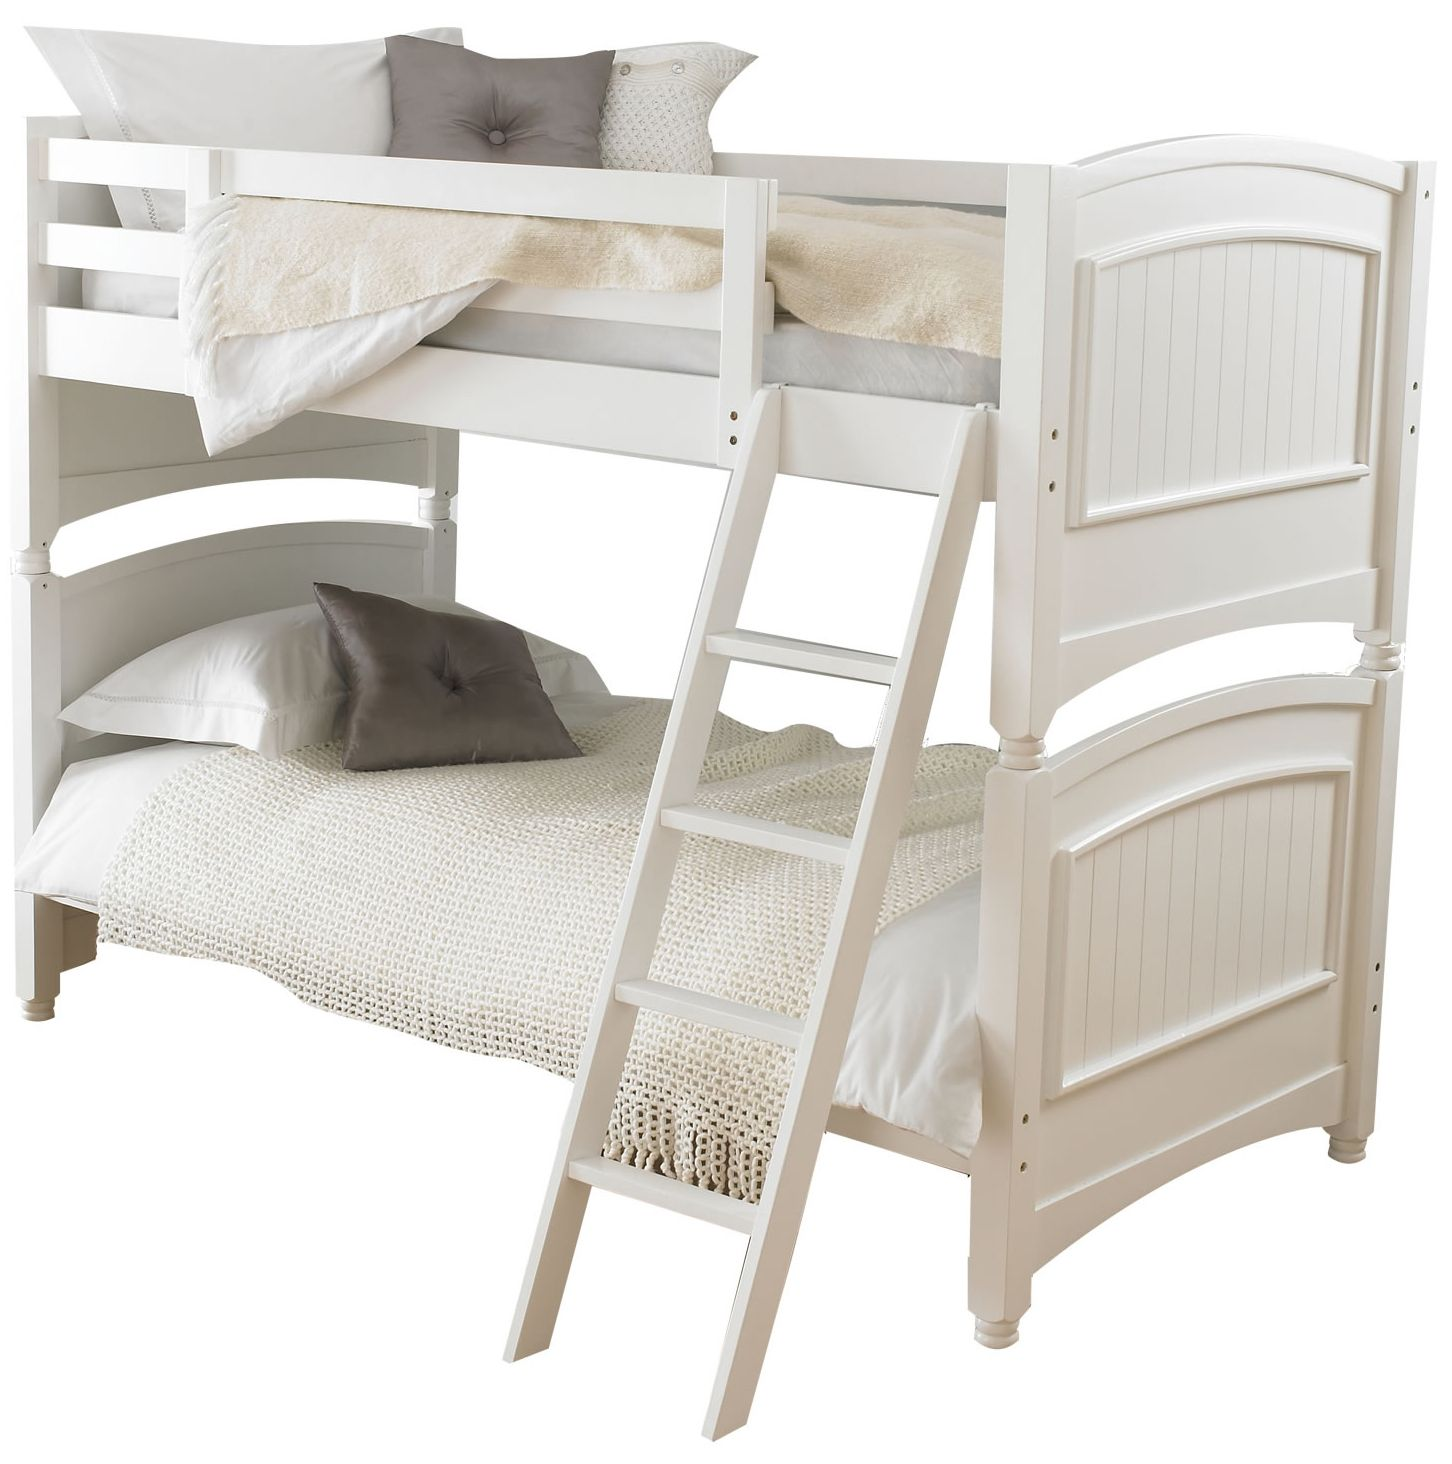 Colonial white bunk bed. £329.99 http//www.worldstores.co